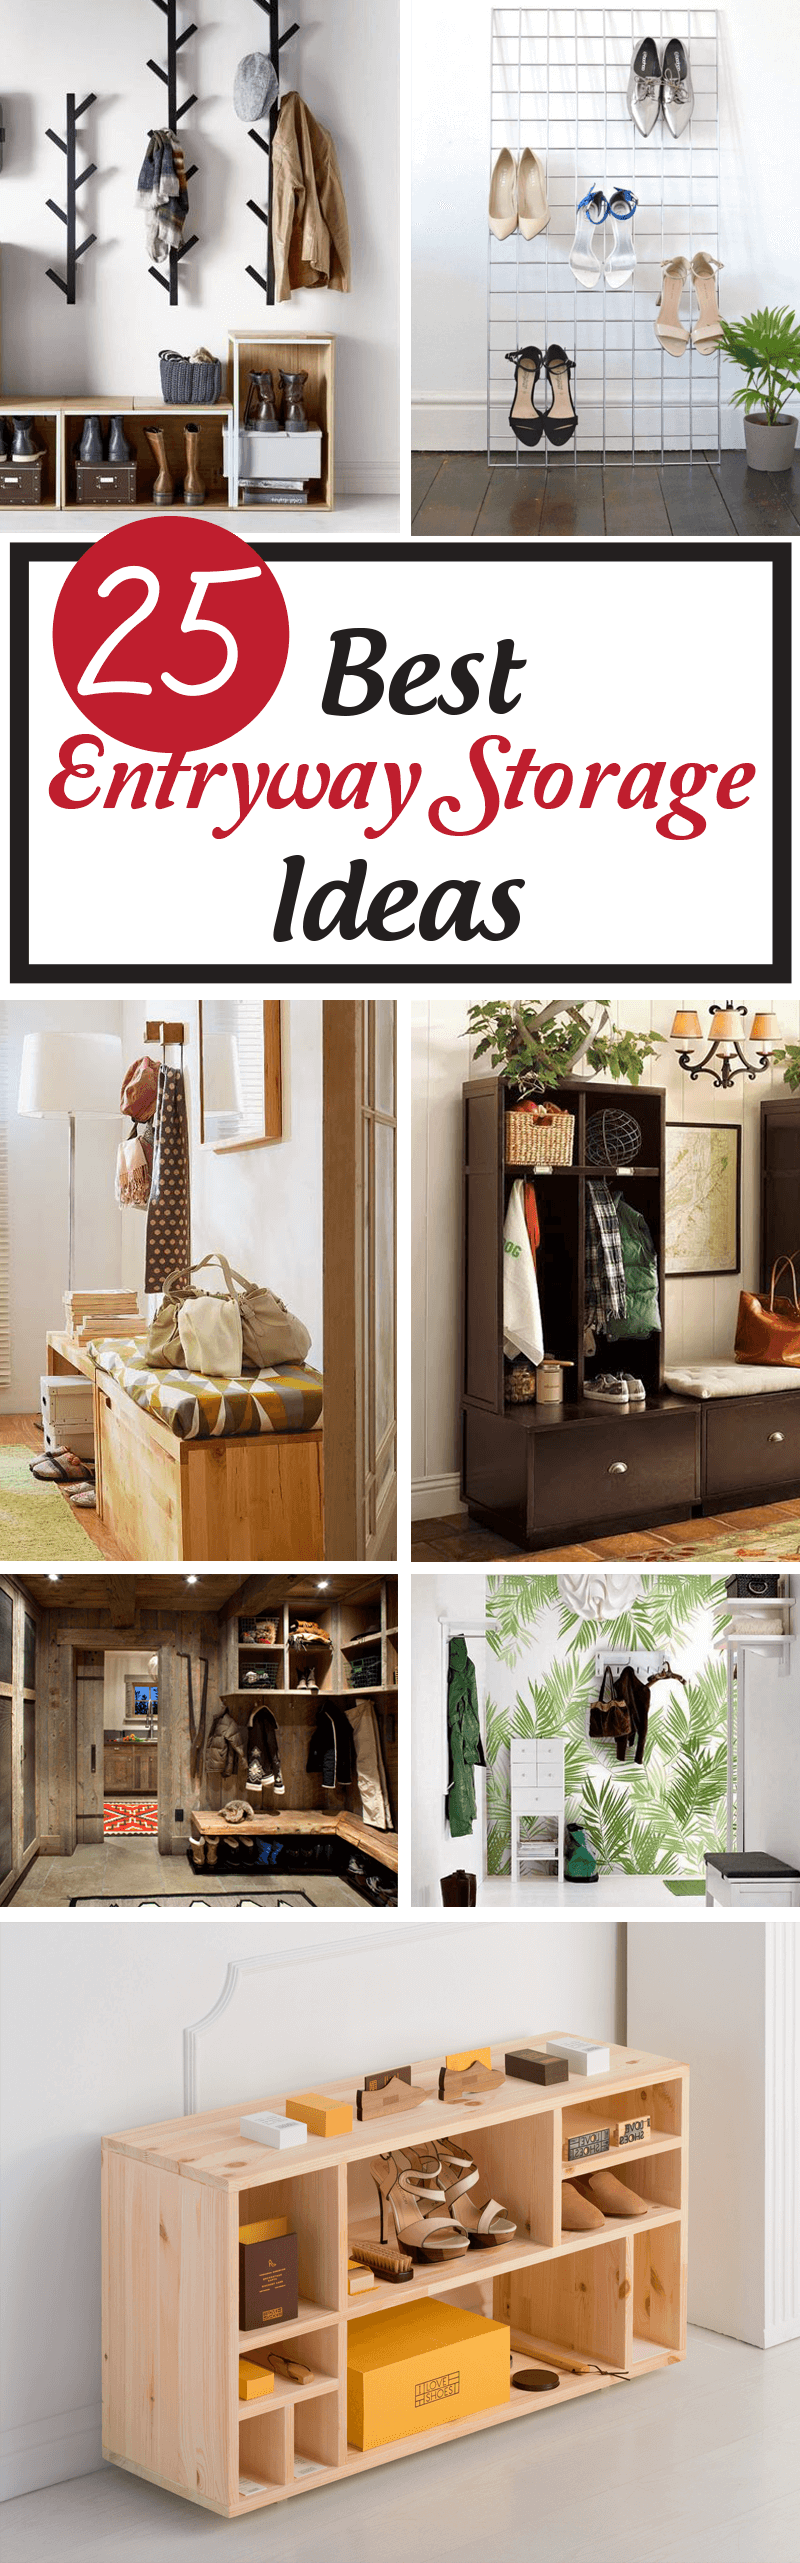 best entryway storage ideas